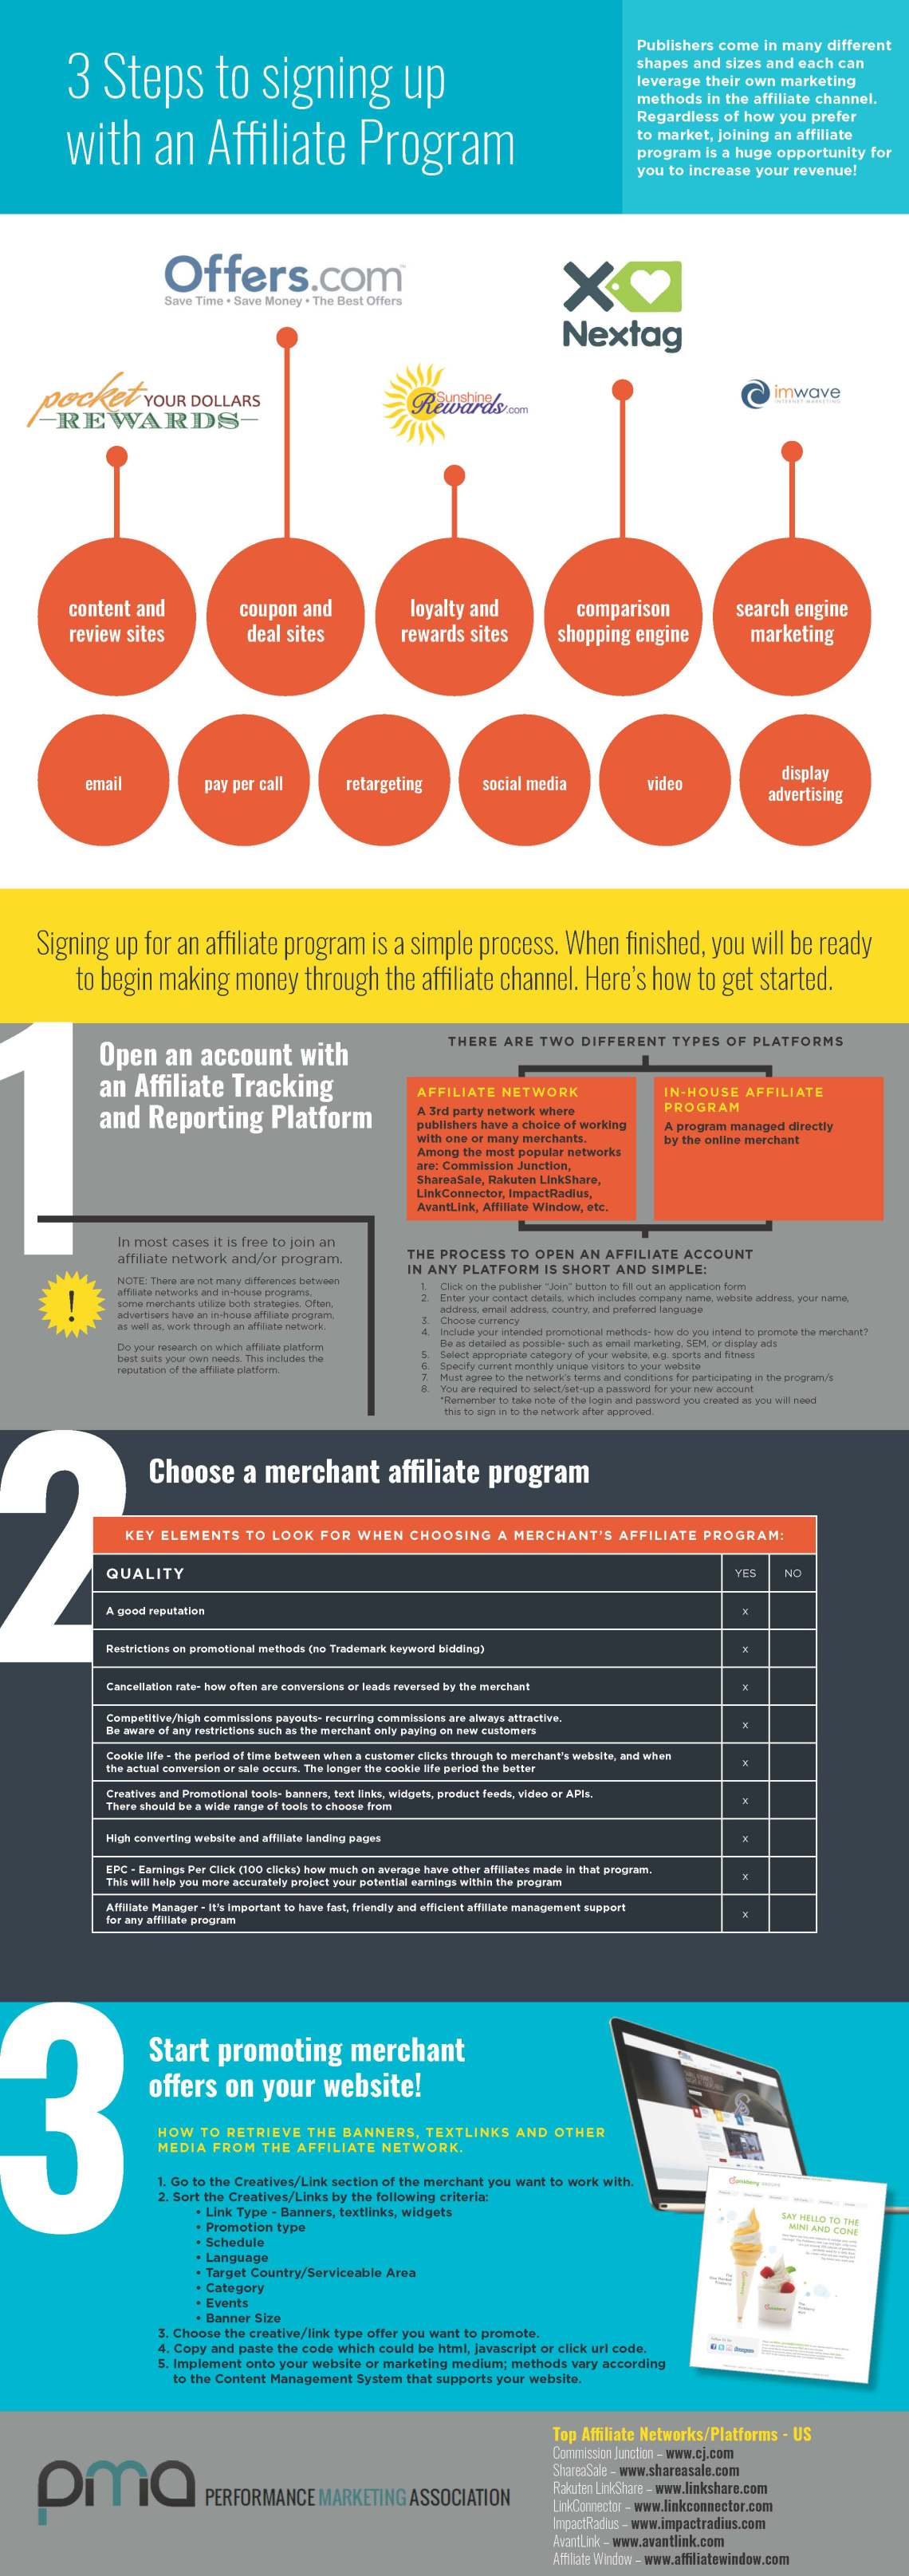 How to sign up for an affiliate program in 3 steps - Choose, Sign Up & Grab Banners/Links